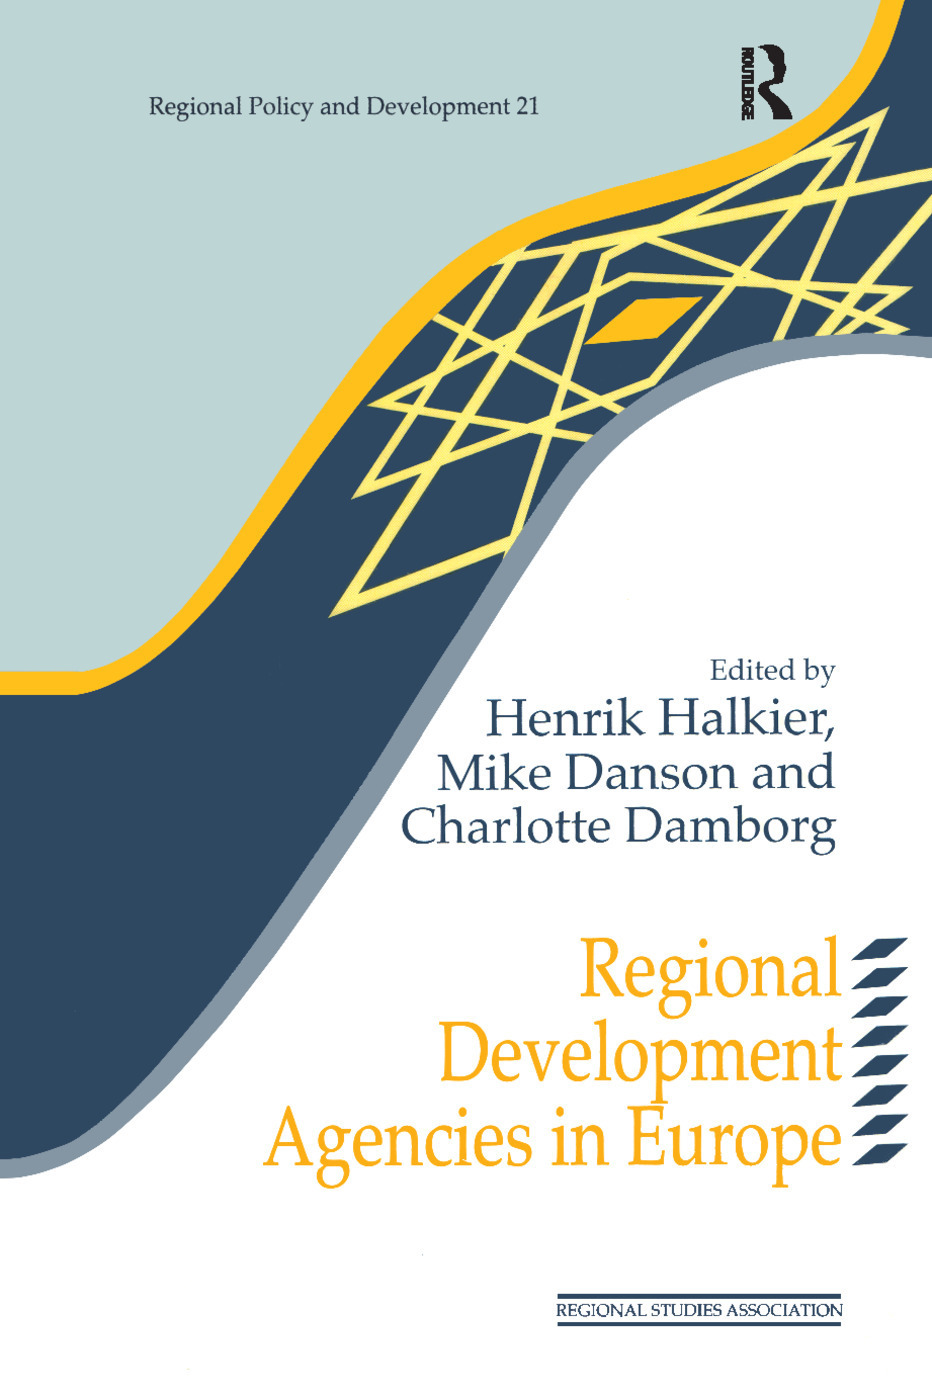 Regional Development Agencies in Europe